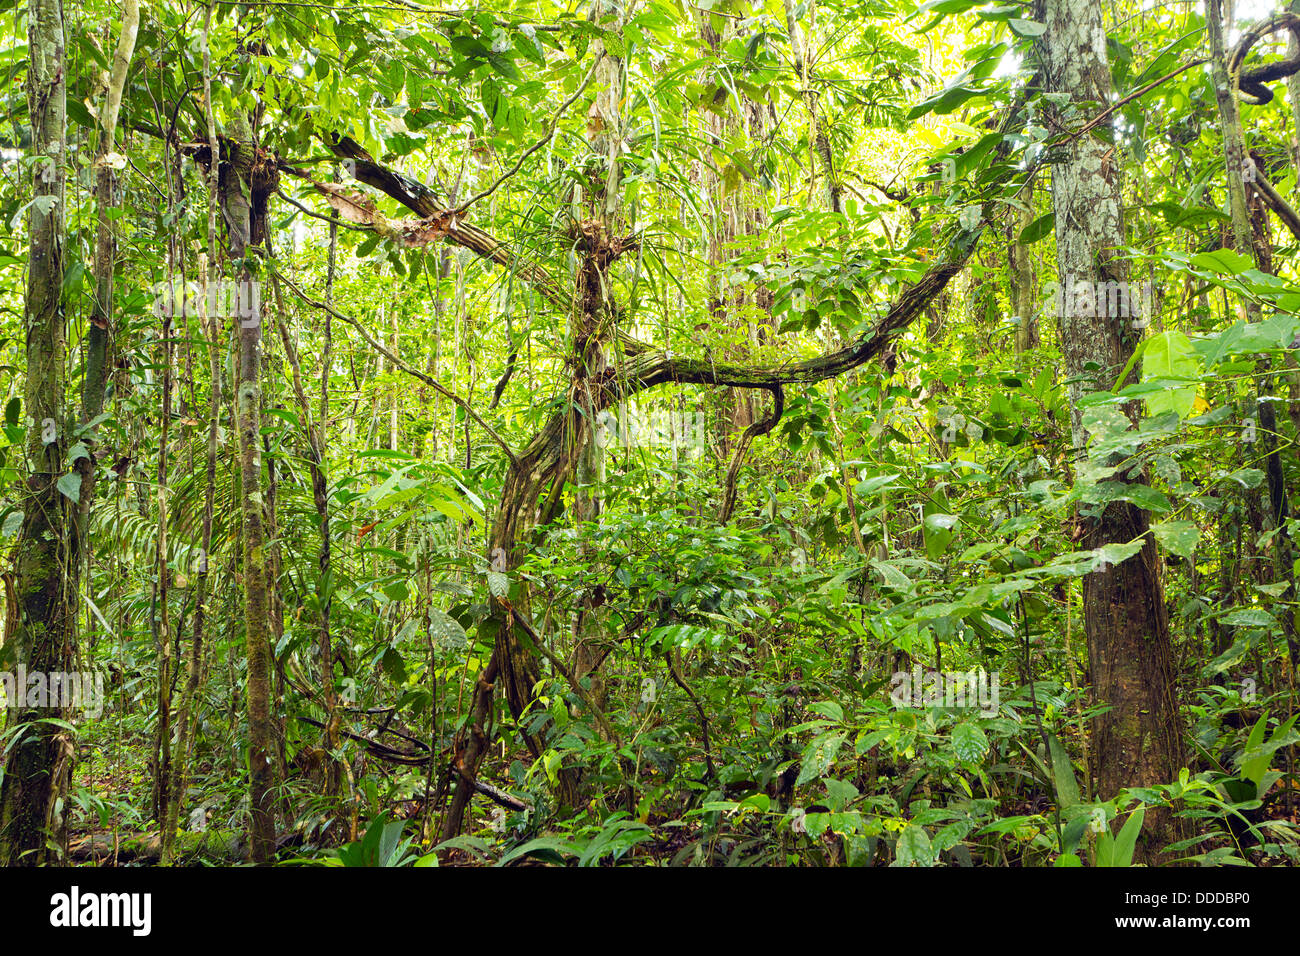 Tangle of lianas in the rainforest understory, Ecuador - Stock Image